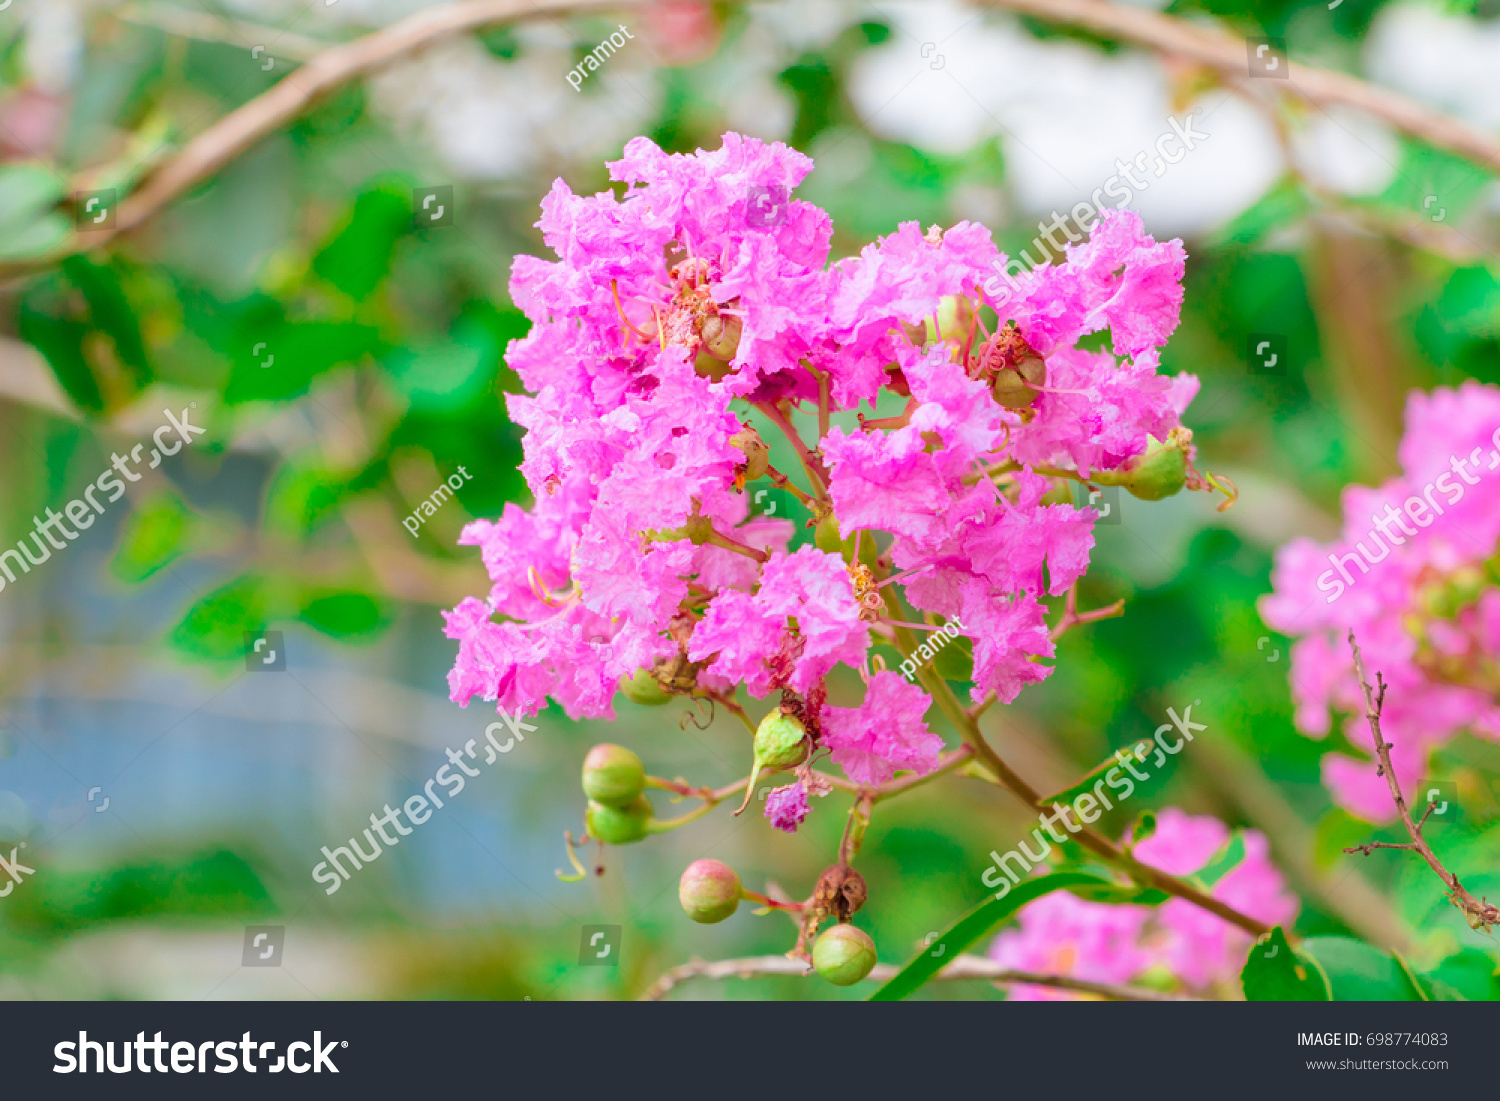 Flower pink crape myrtle lagerstroemia speciosa stock photo flower pink crape myrtle lagerstroemia speciosa or jarul with copy space add text select focus with nvjuhfo Choice Image